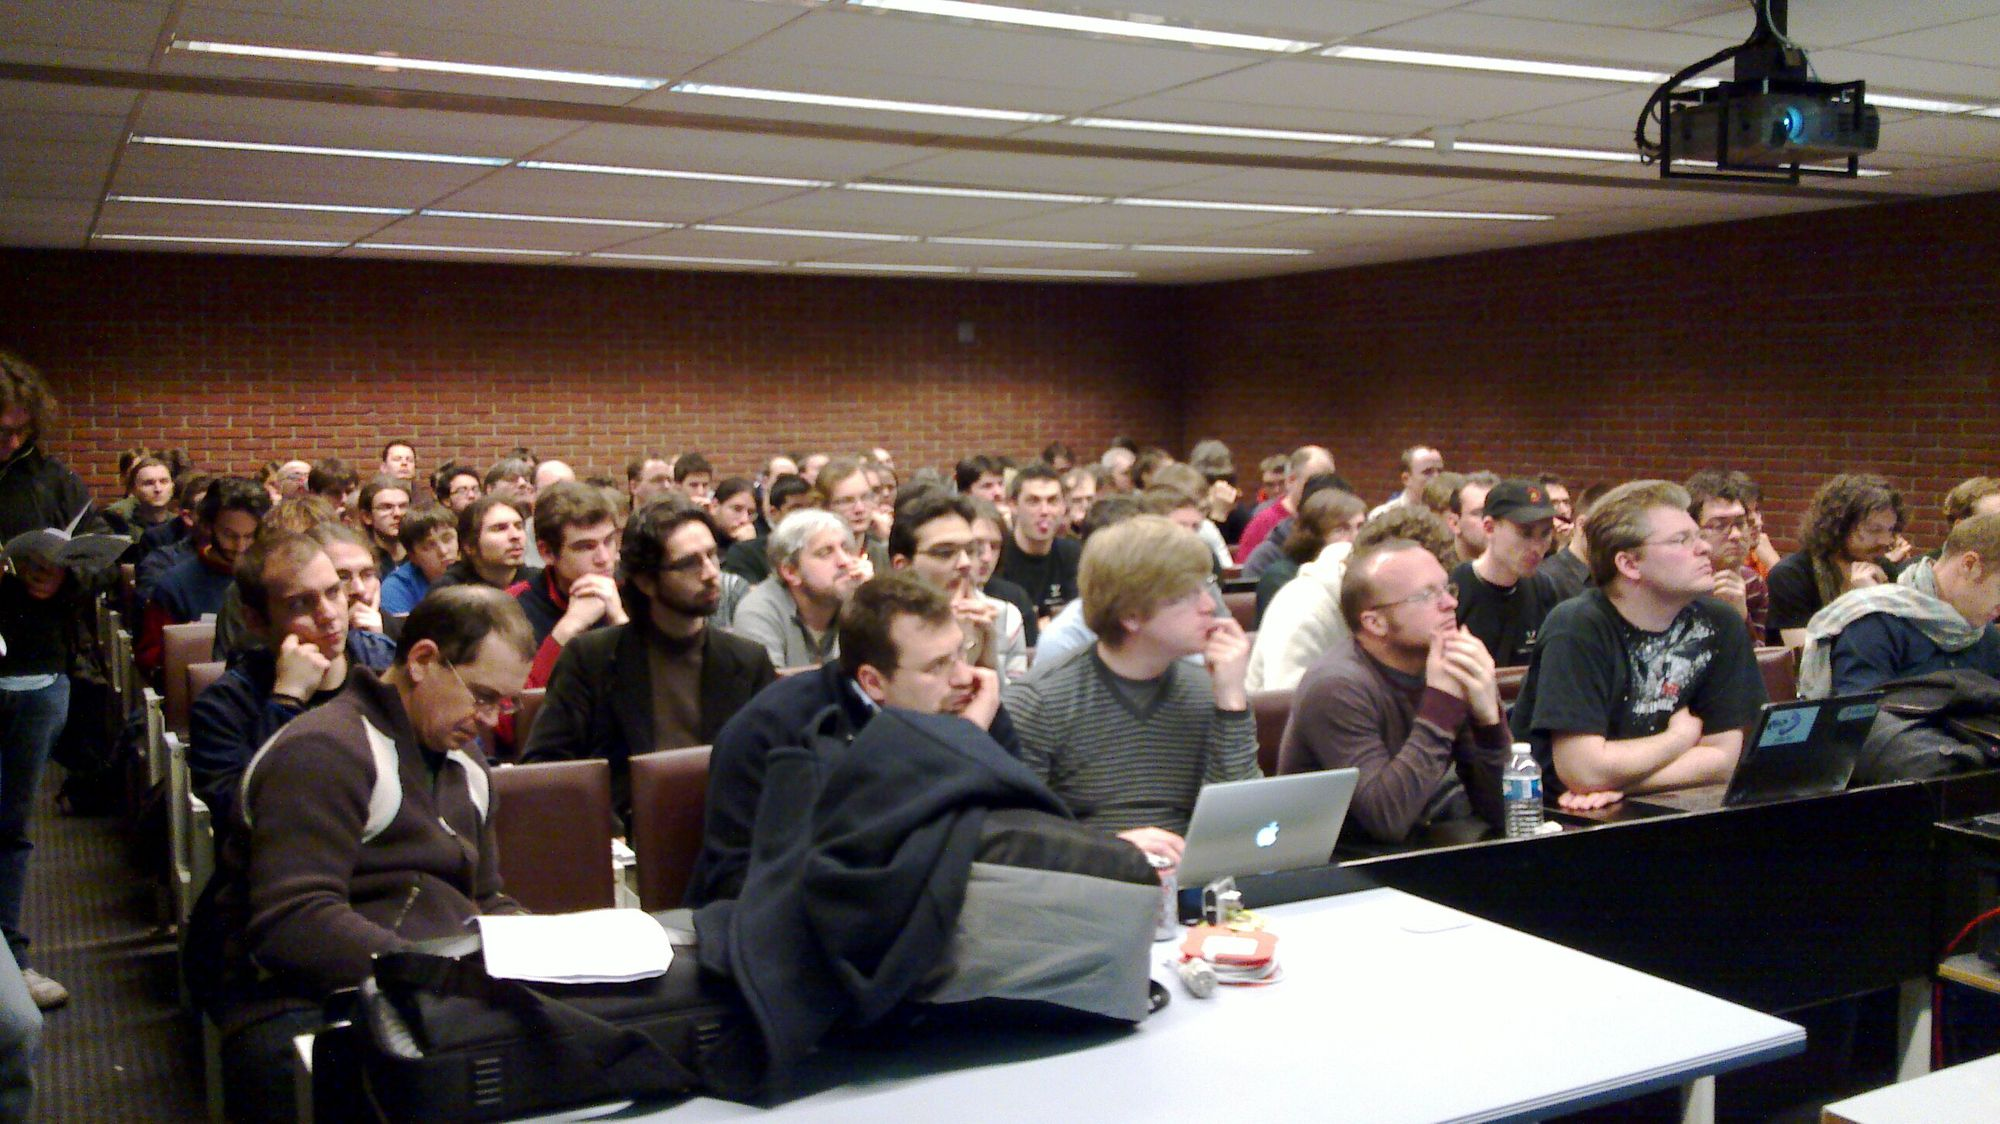 XMPP Summit 8 and FOSDEM'10